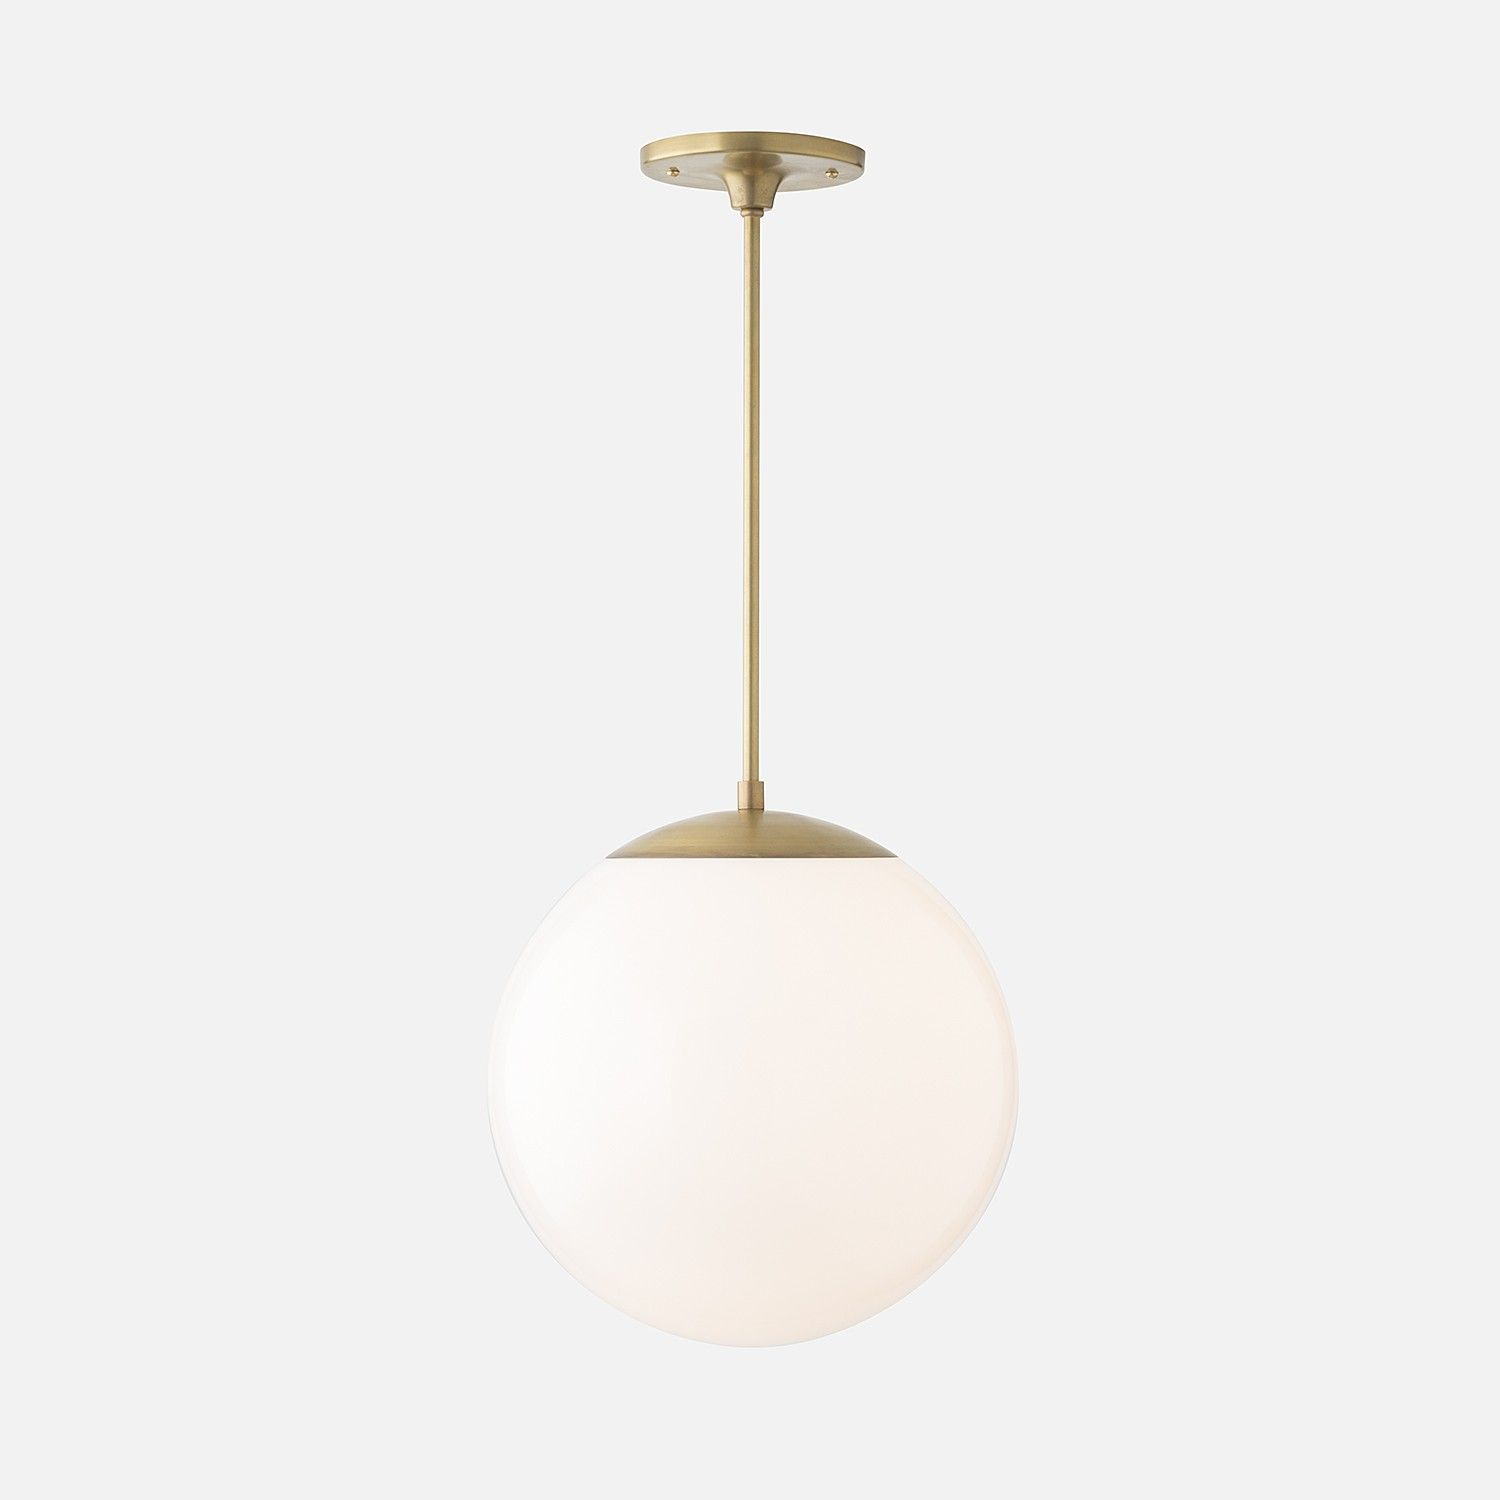 Over Table Light Fixture Luna Pendant Natural Brass With 12 Quot Shade The Rich